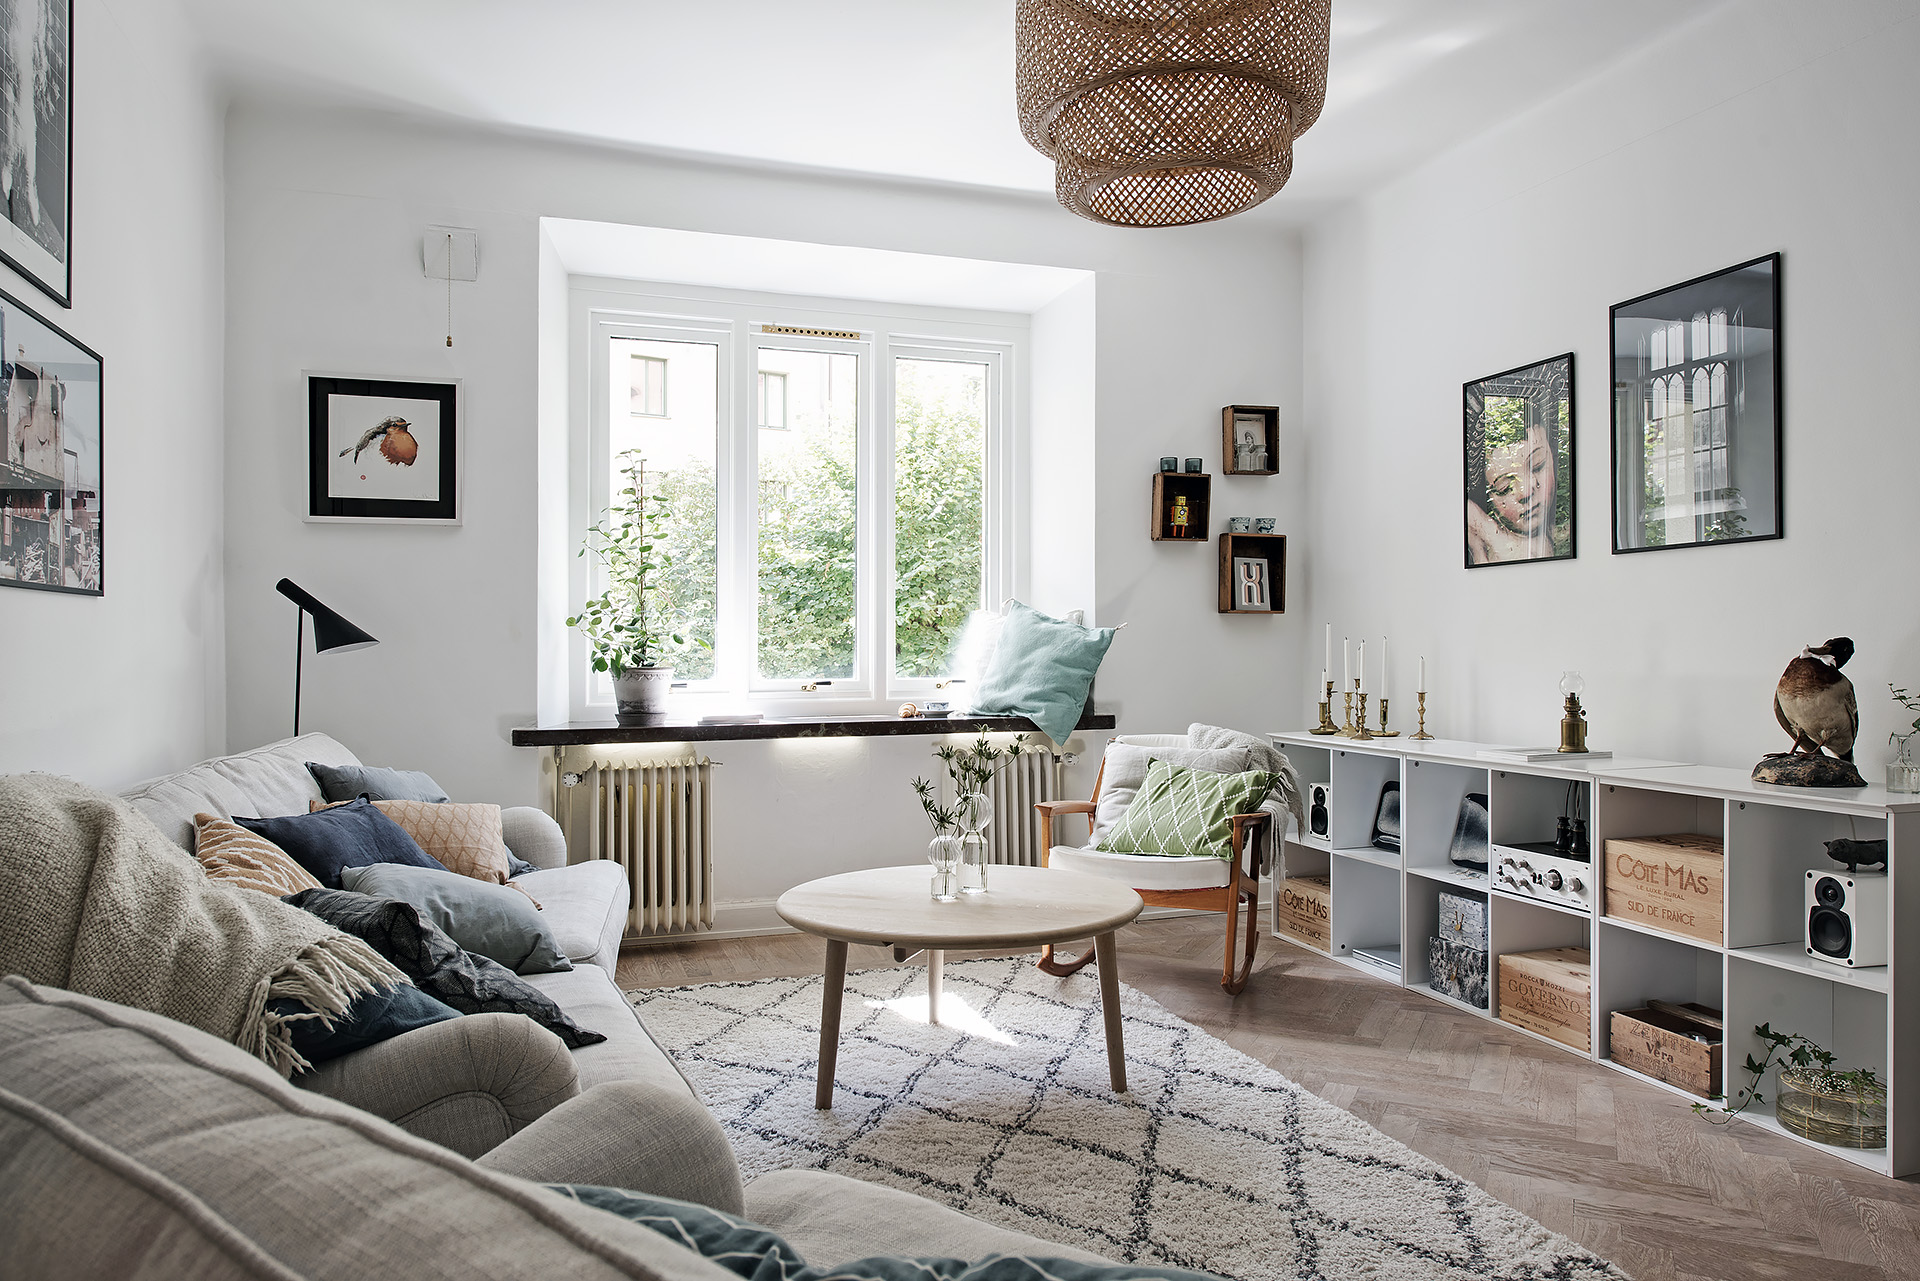 Small Living Room Decoration 6 Smart Ideas To Make It: A Dreamy & Cozy Scandinavian Apartment